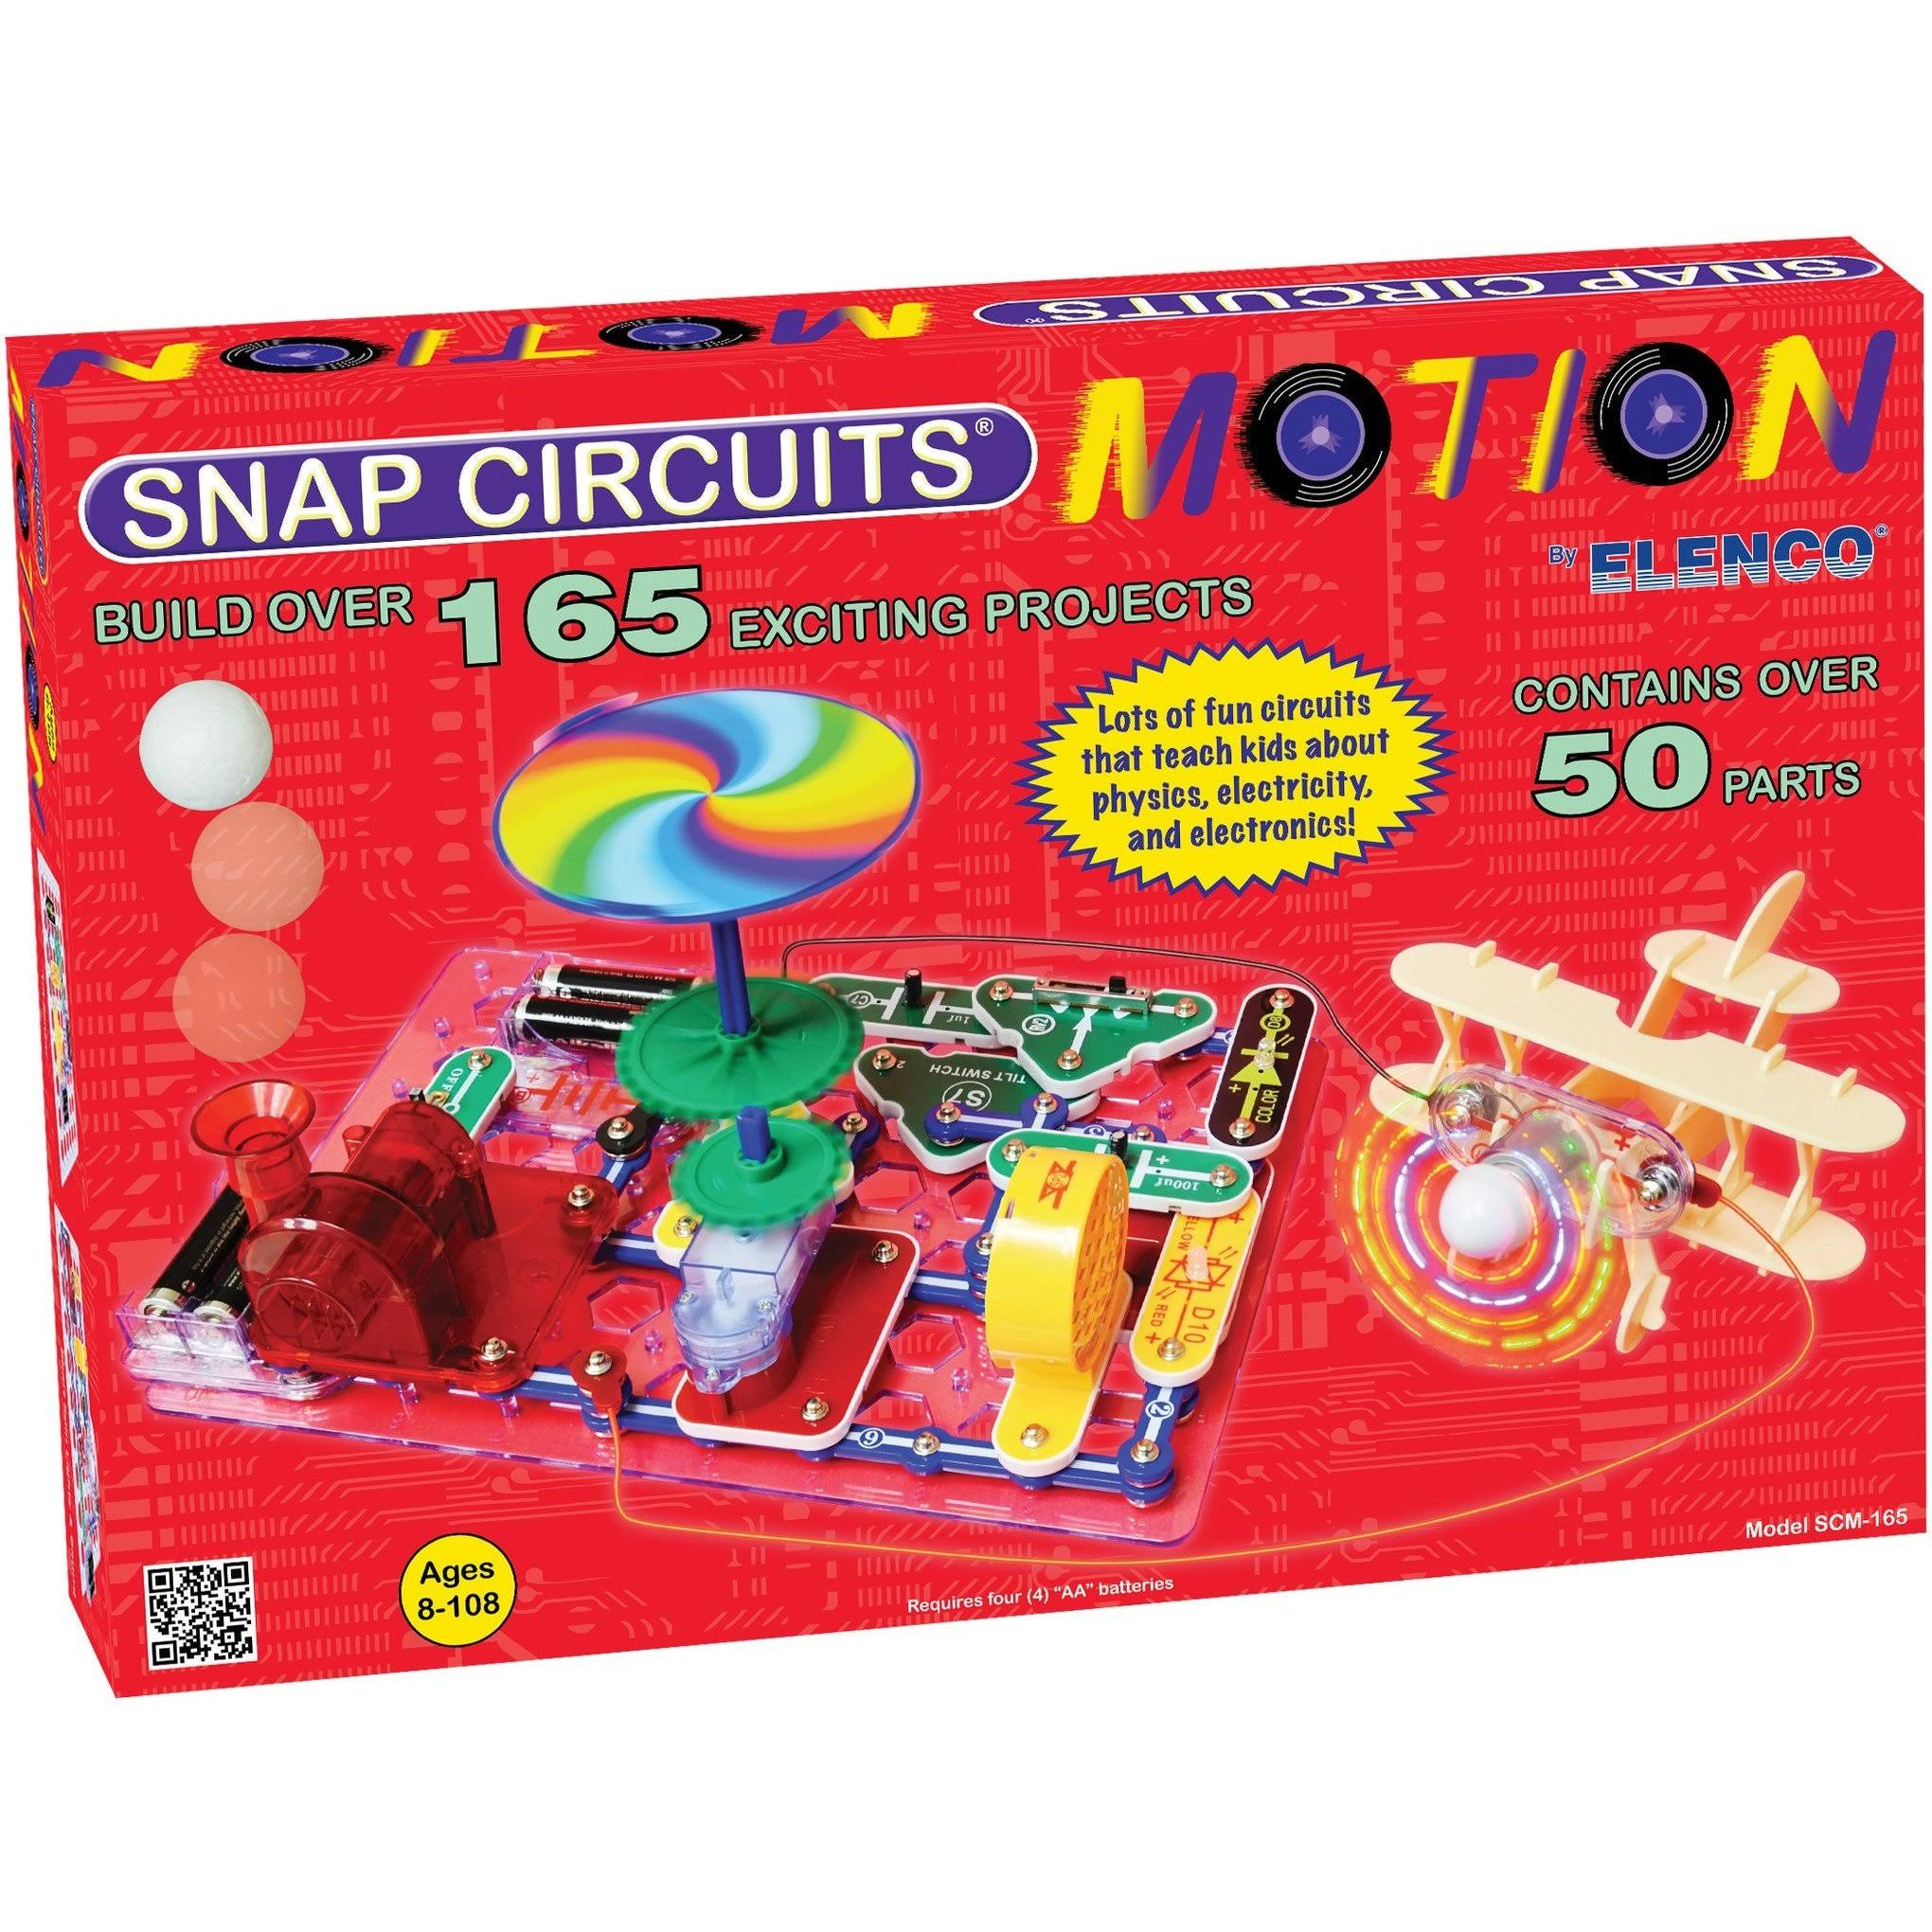 Elenco Snap Circuits Motion Kit